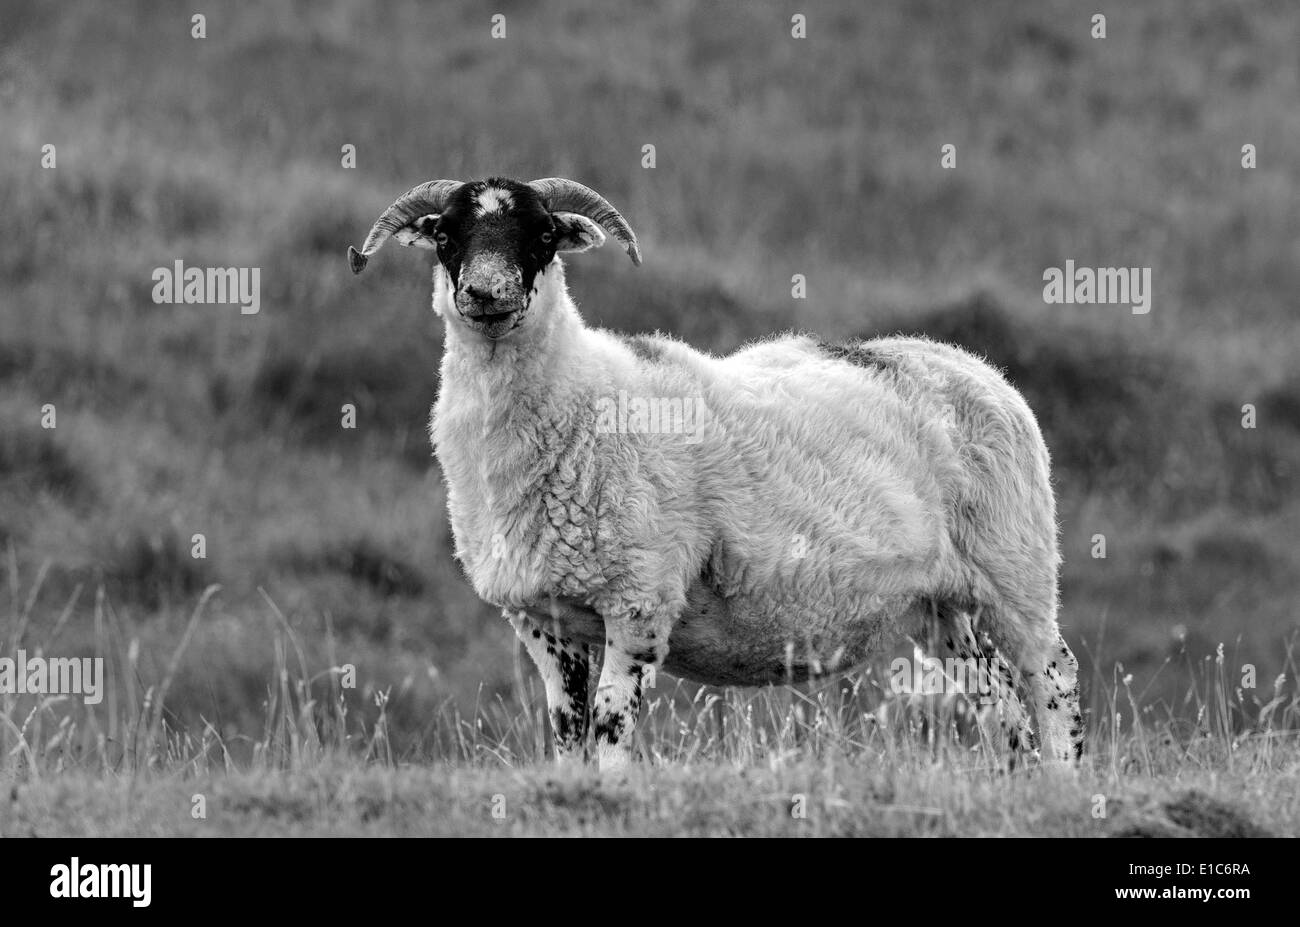 Sheep near Leverborough, on the Island of South Harris - Stock Image